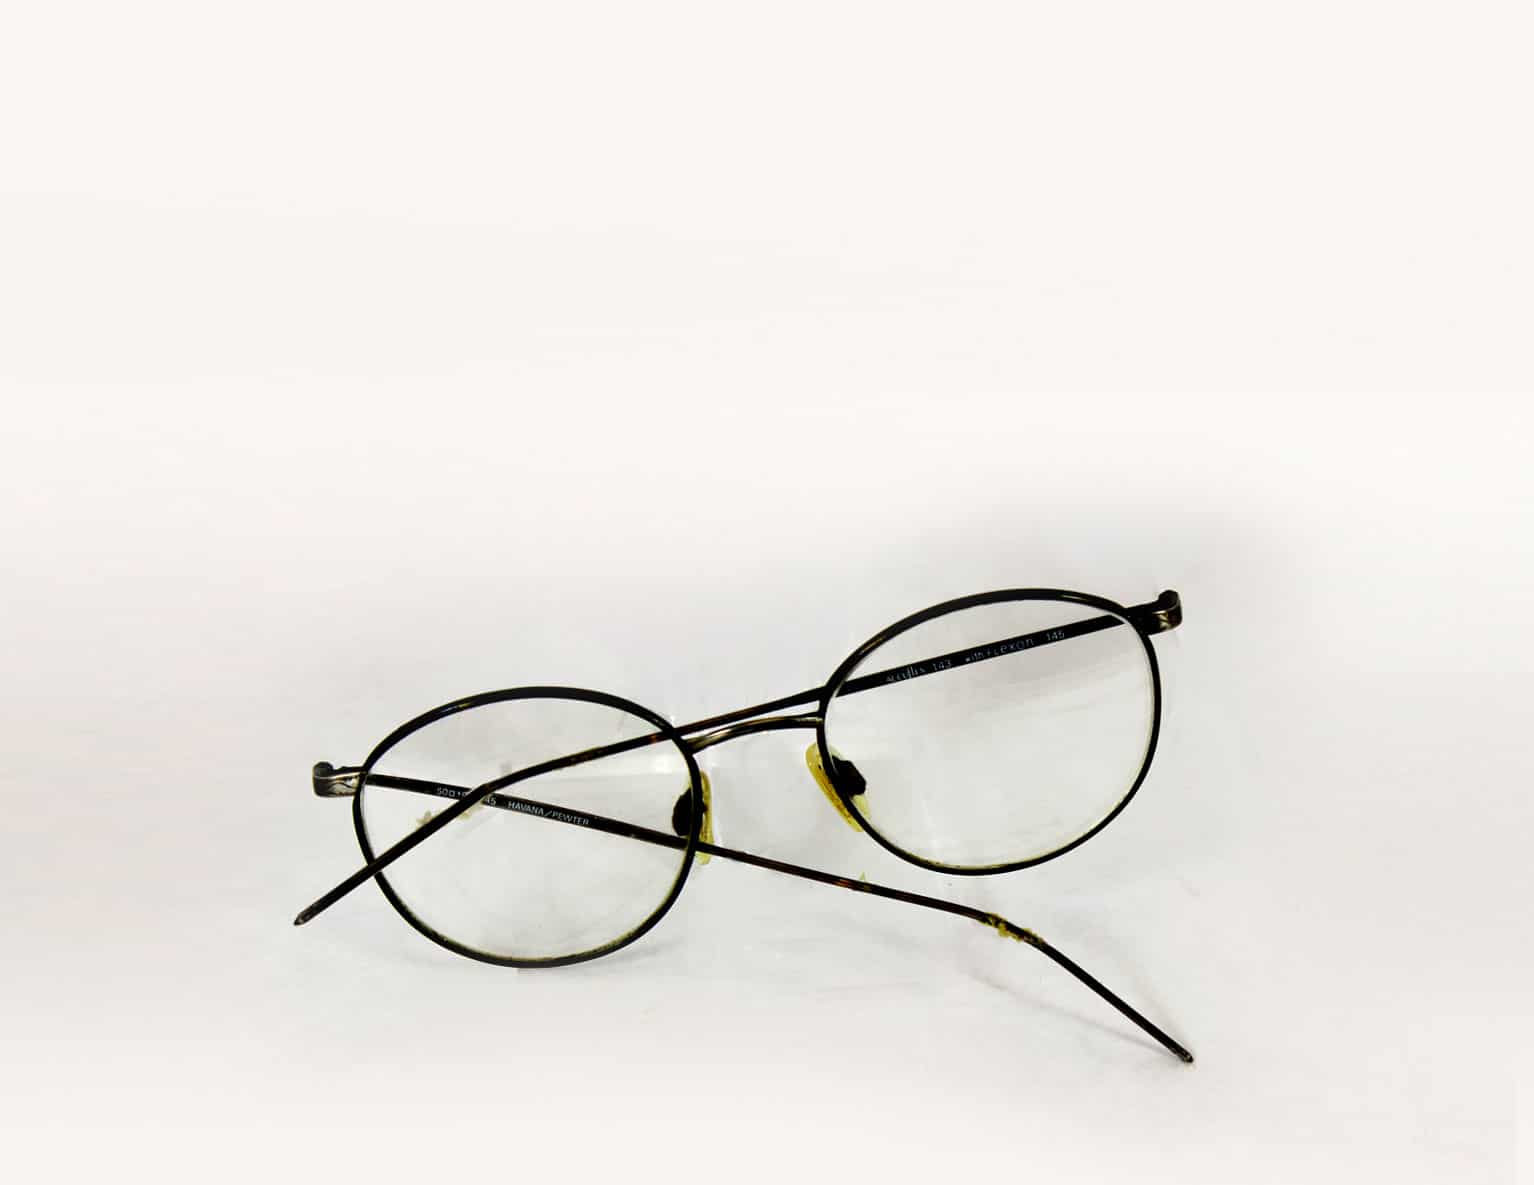 Glasses Frames Adjustment : Adjusting bent eyewear